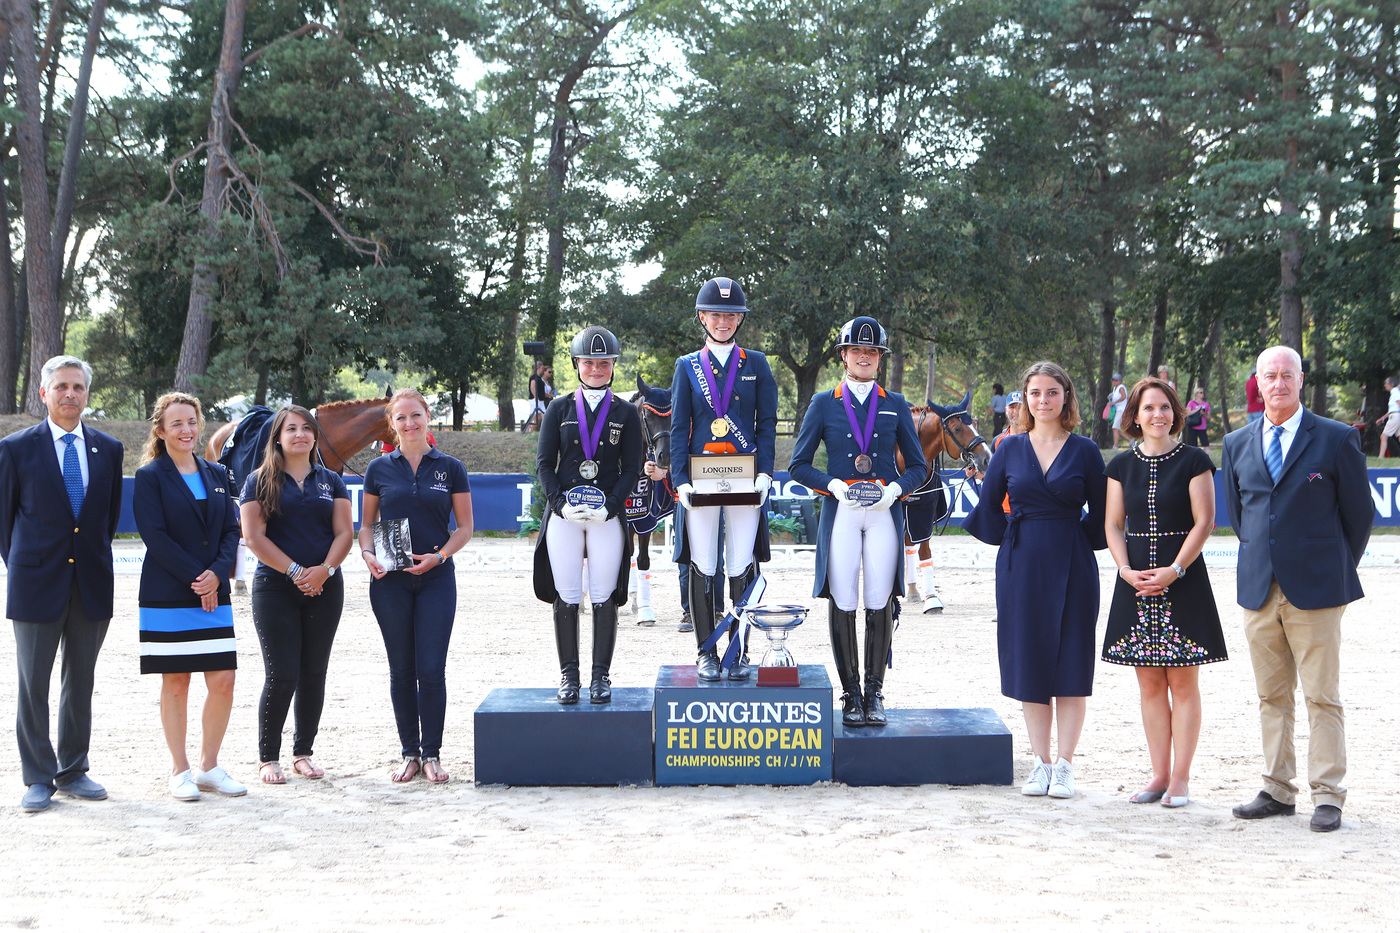 Longines Show Jumping Event: The next generation of athletes showcased in the Longines FEI European Championships CH / J / YR 15